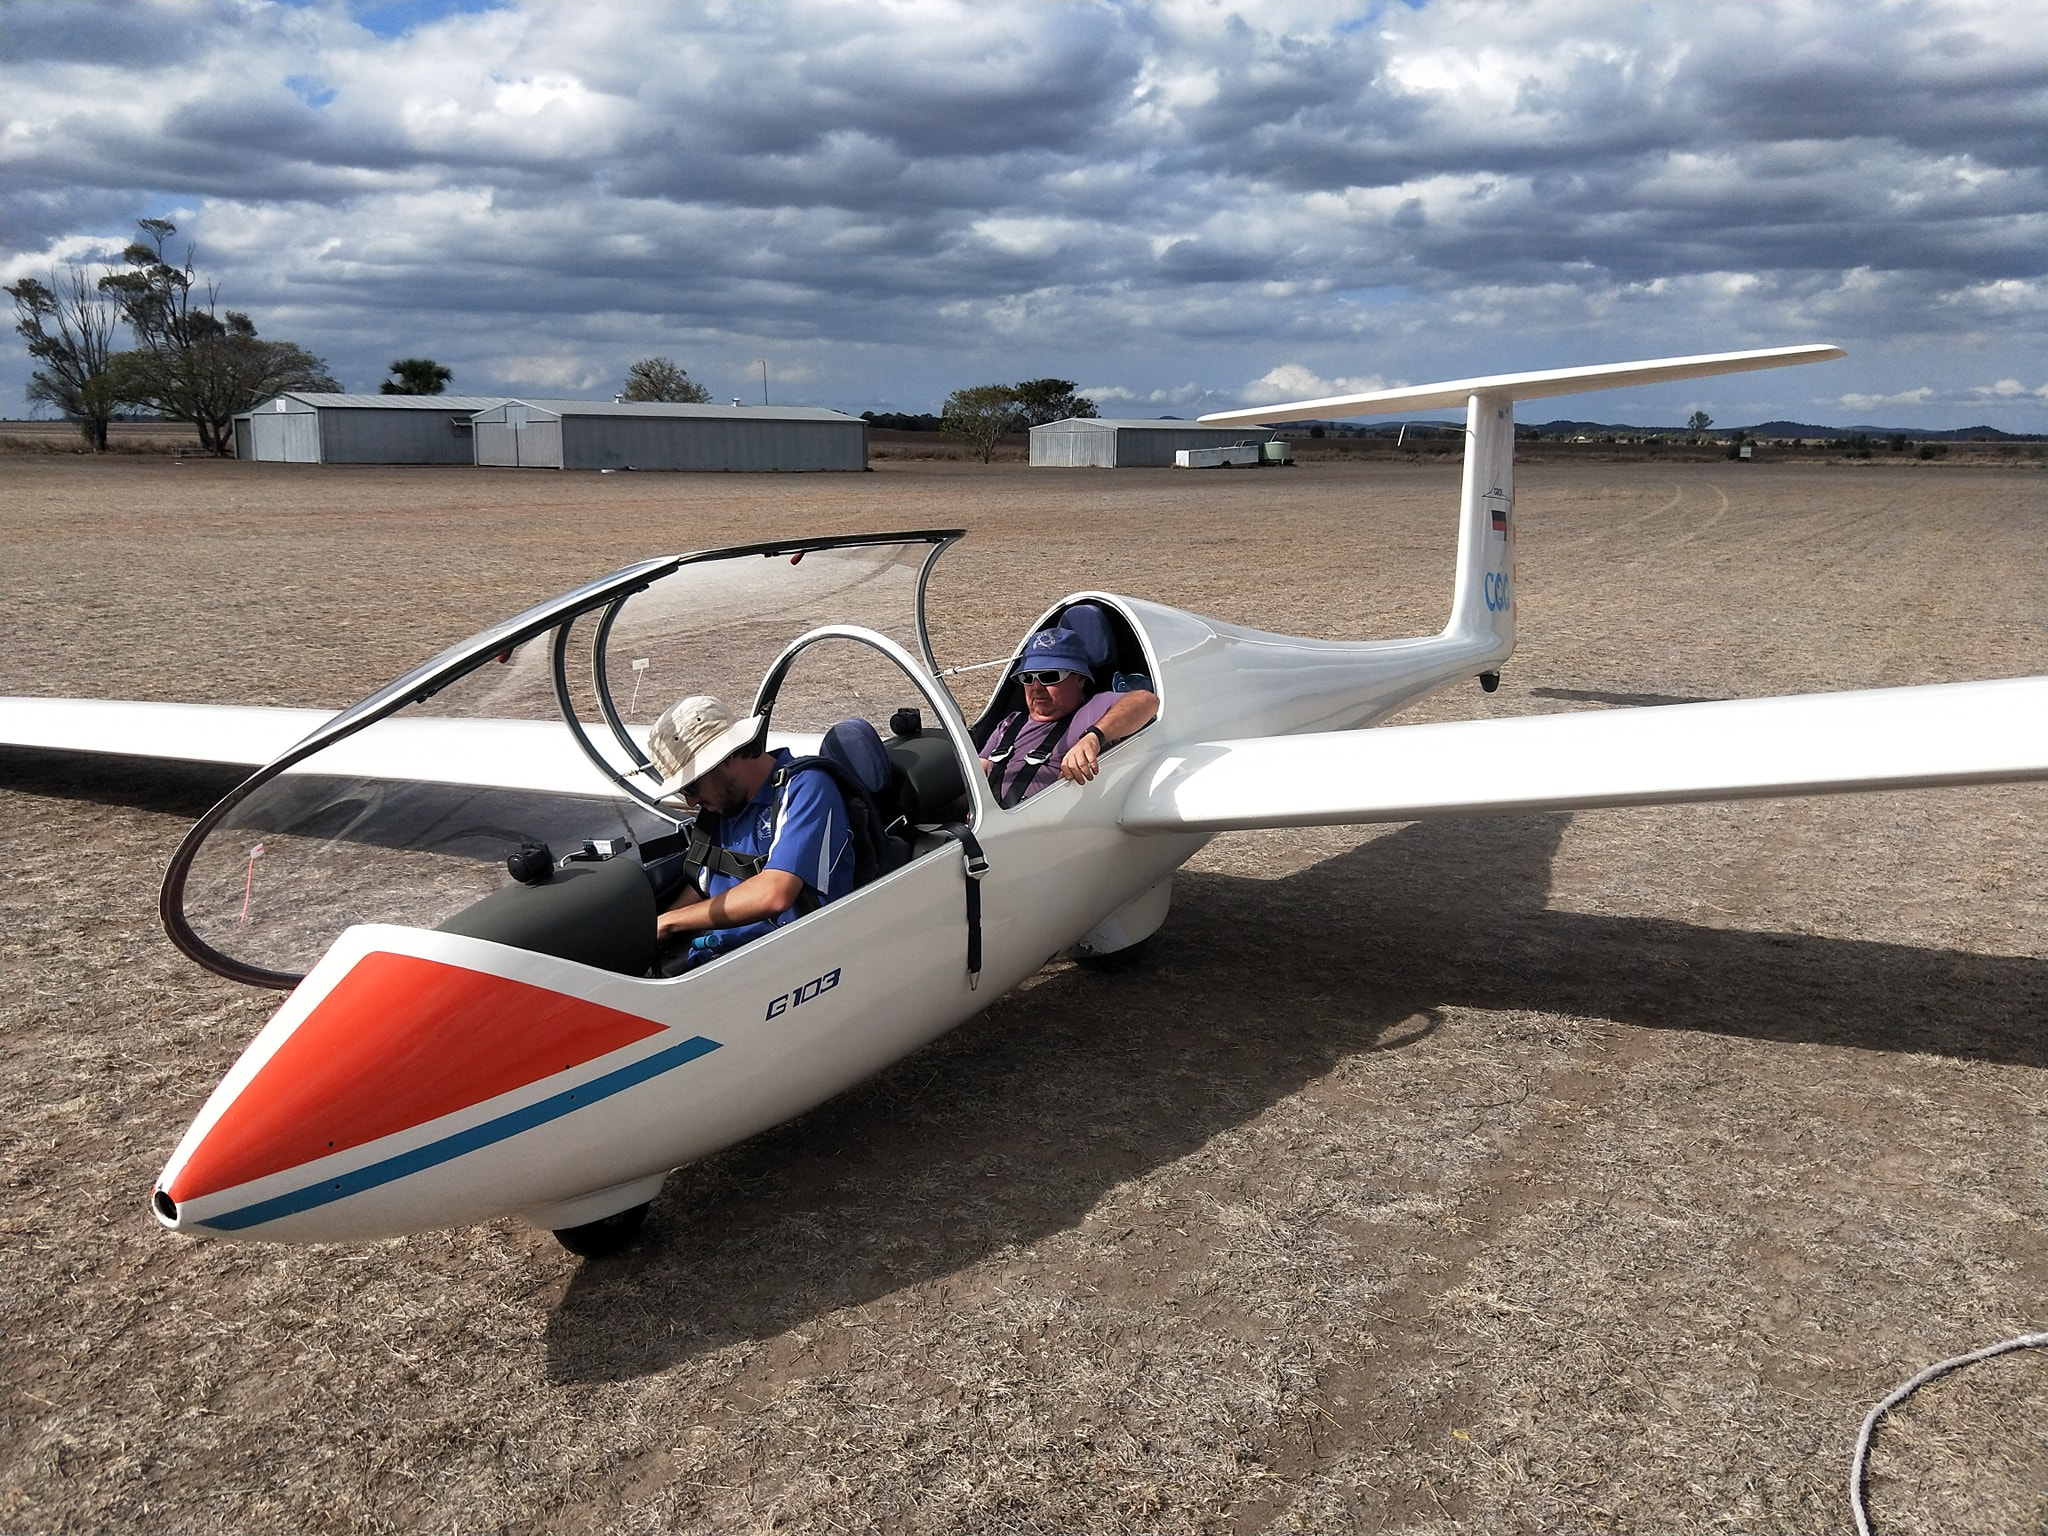 CENTRAL QUEENSLAND GLIDING CLUB